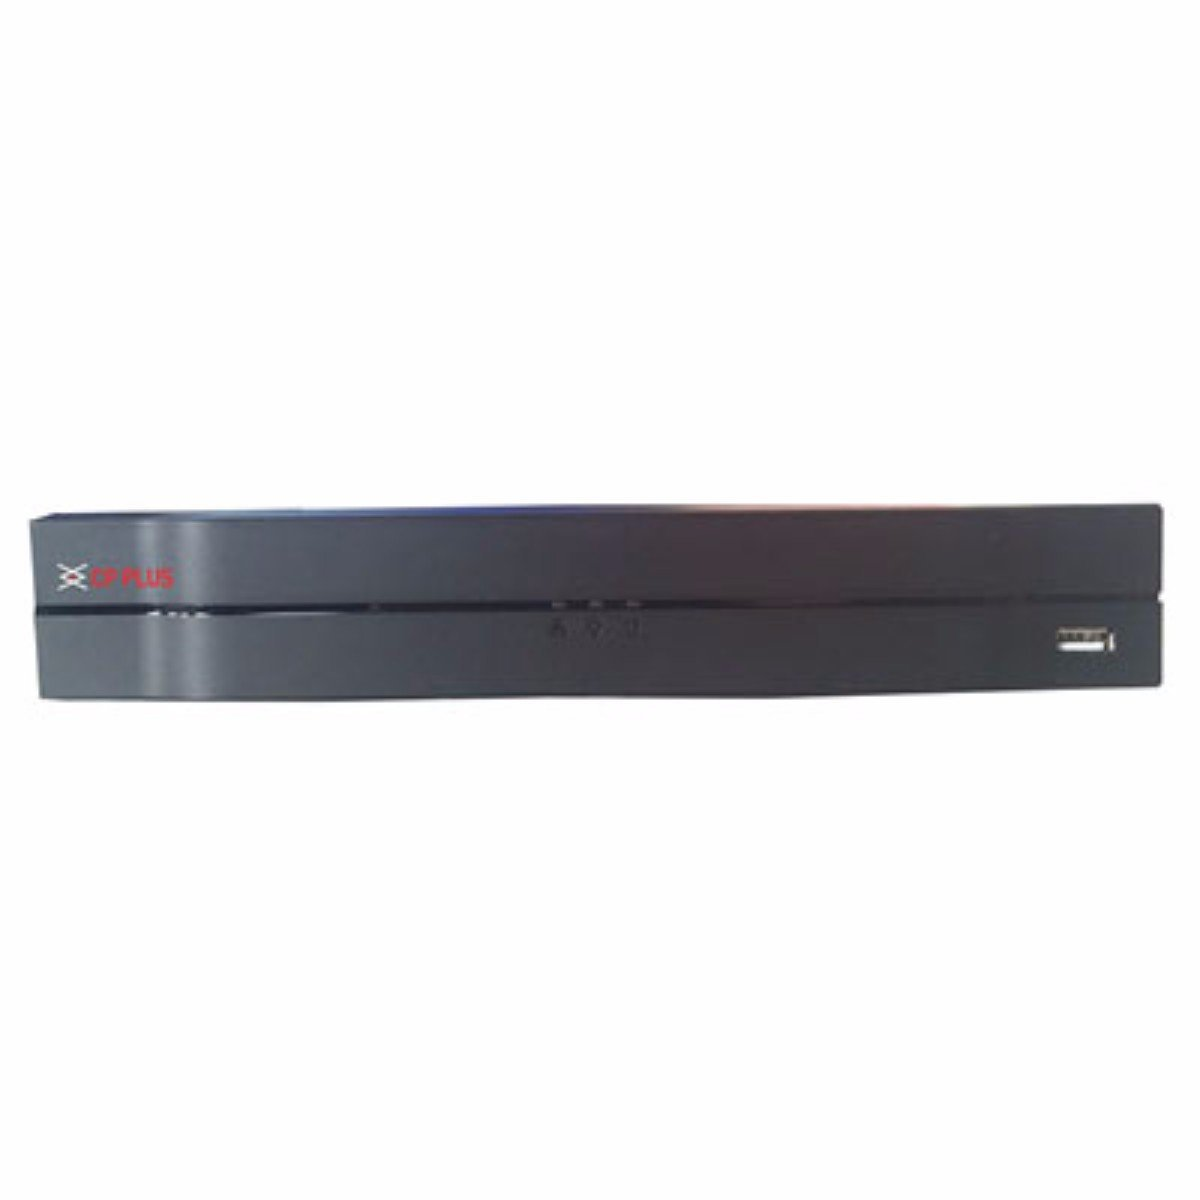 CP Plus CP-UVR-0801E1-S (without Harddisk) 8 Ch. 1 SATA DVR (Black)